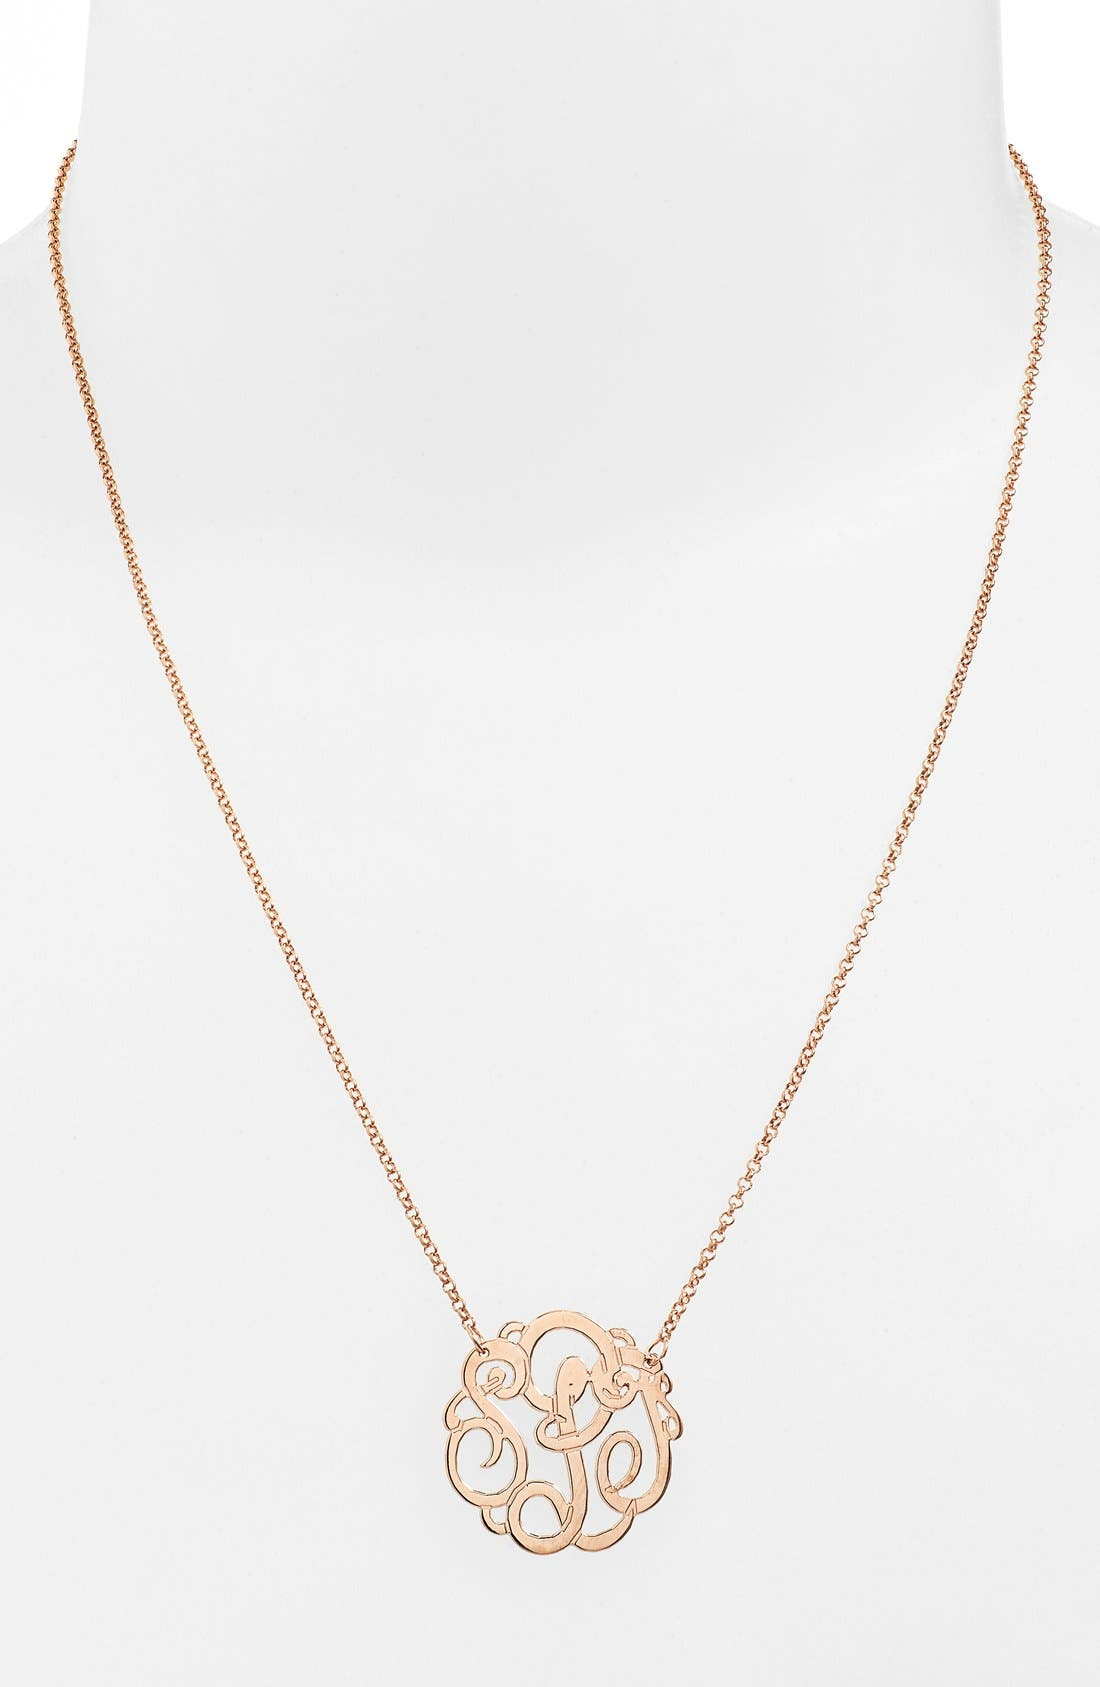 Personalized Small 3-Initial Letter Monogram Necklace,                             Alternate thumbnail 2, color,                             ROSE GOLD